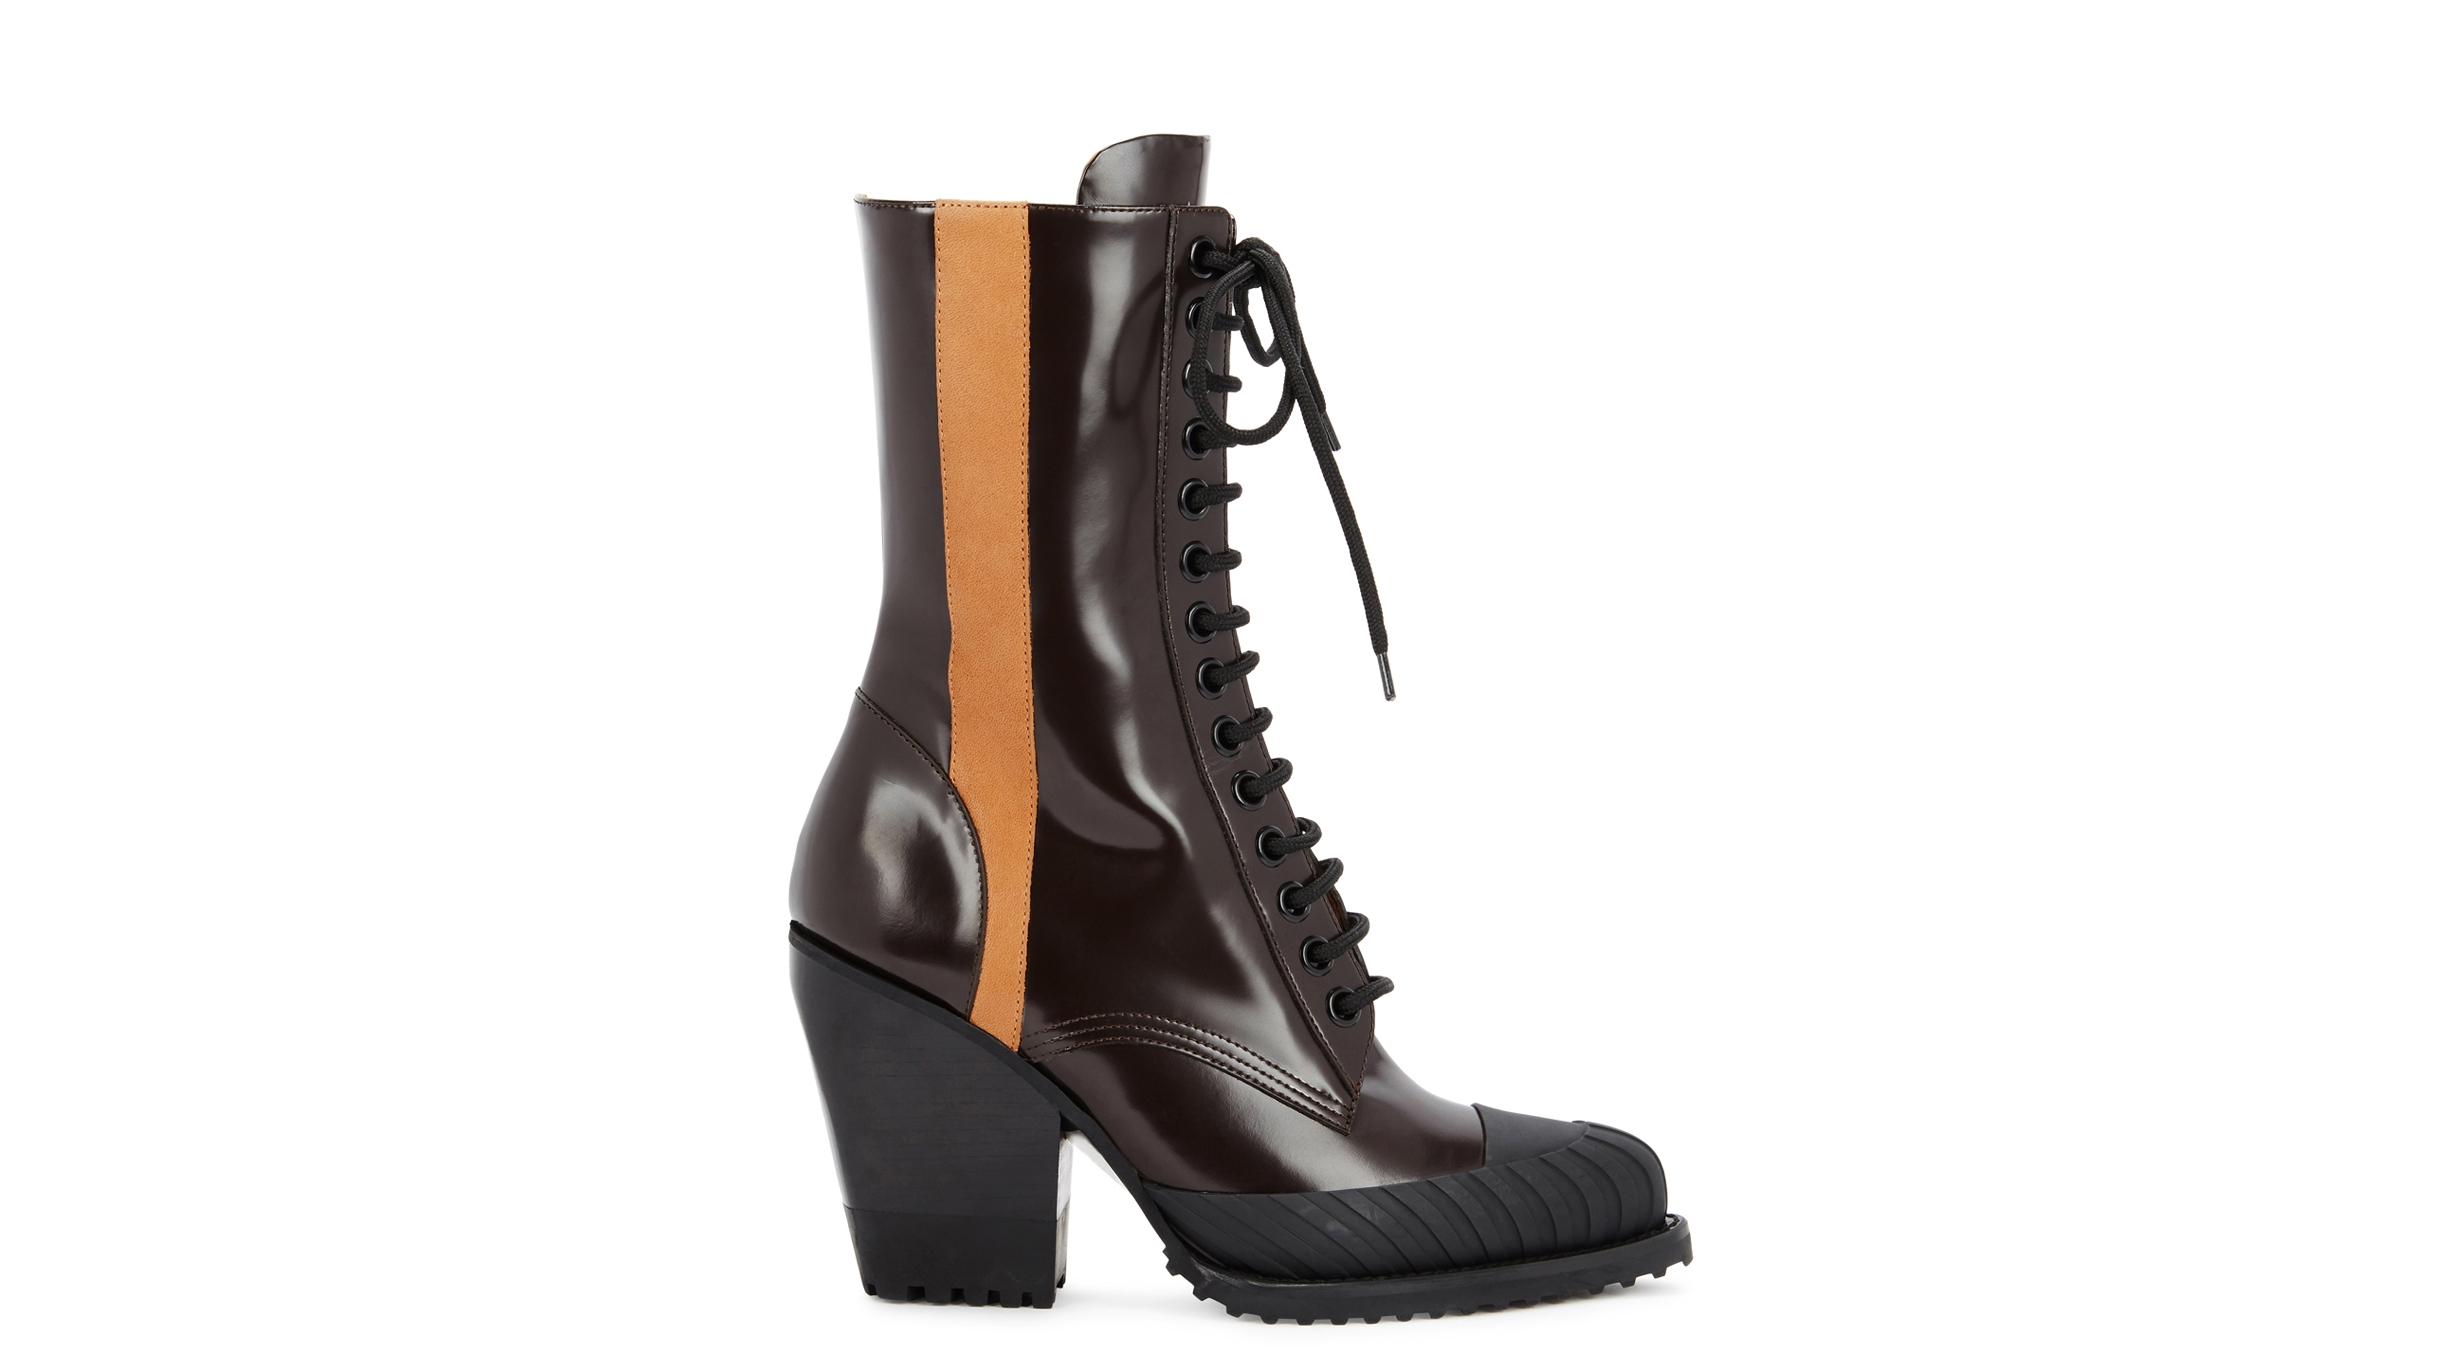 897f73c6737 Chloé Rylee burgundy glossed leather boots - Harvey Nichols